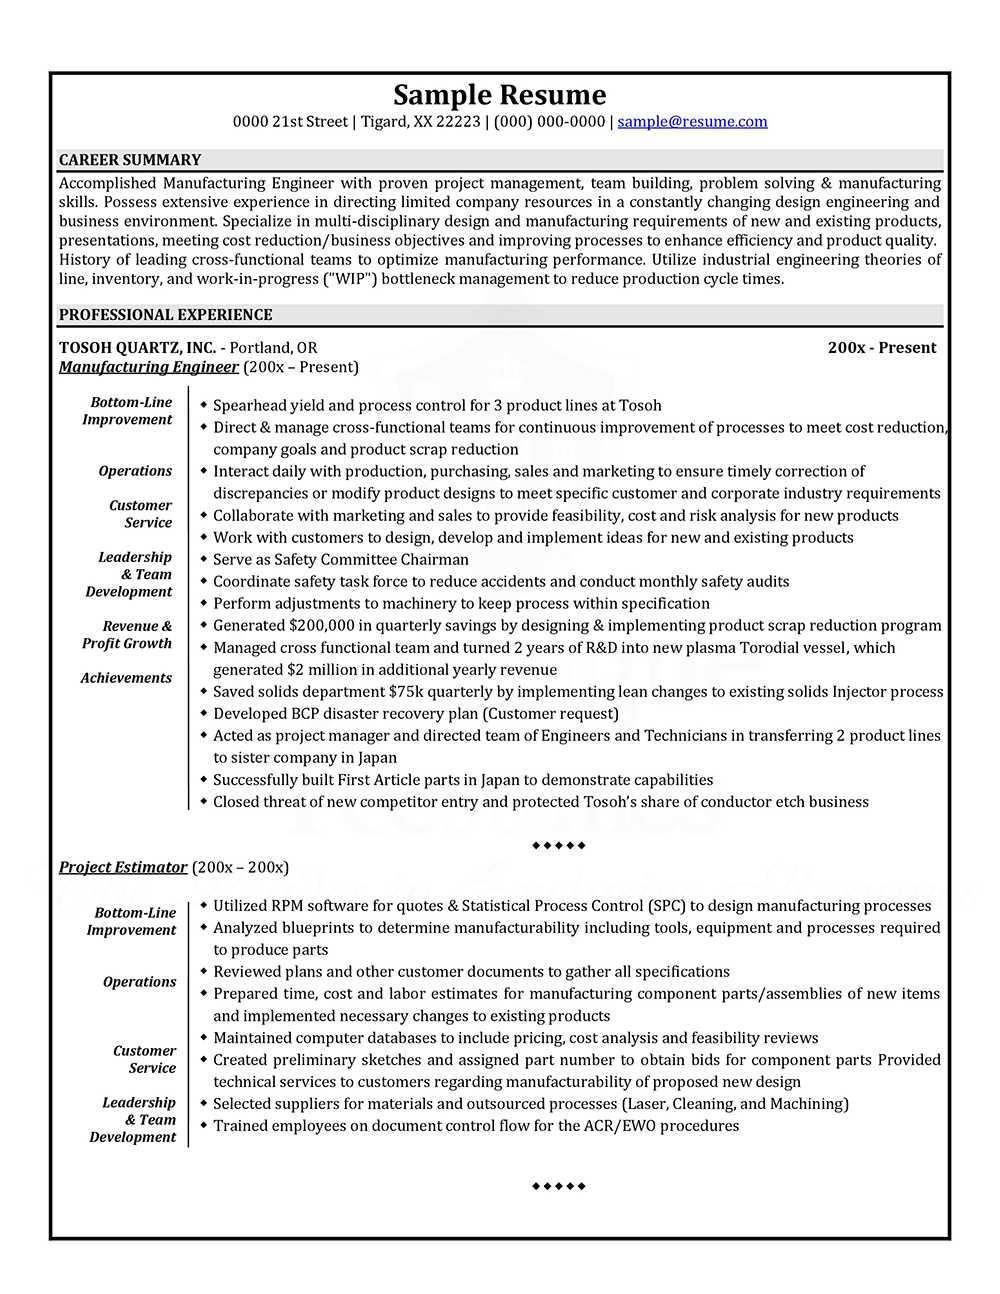 sample resume of former business owner